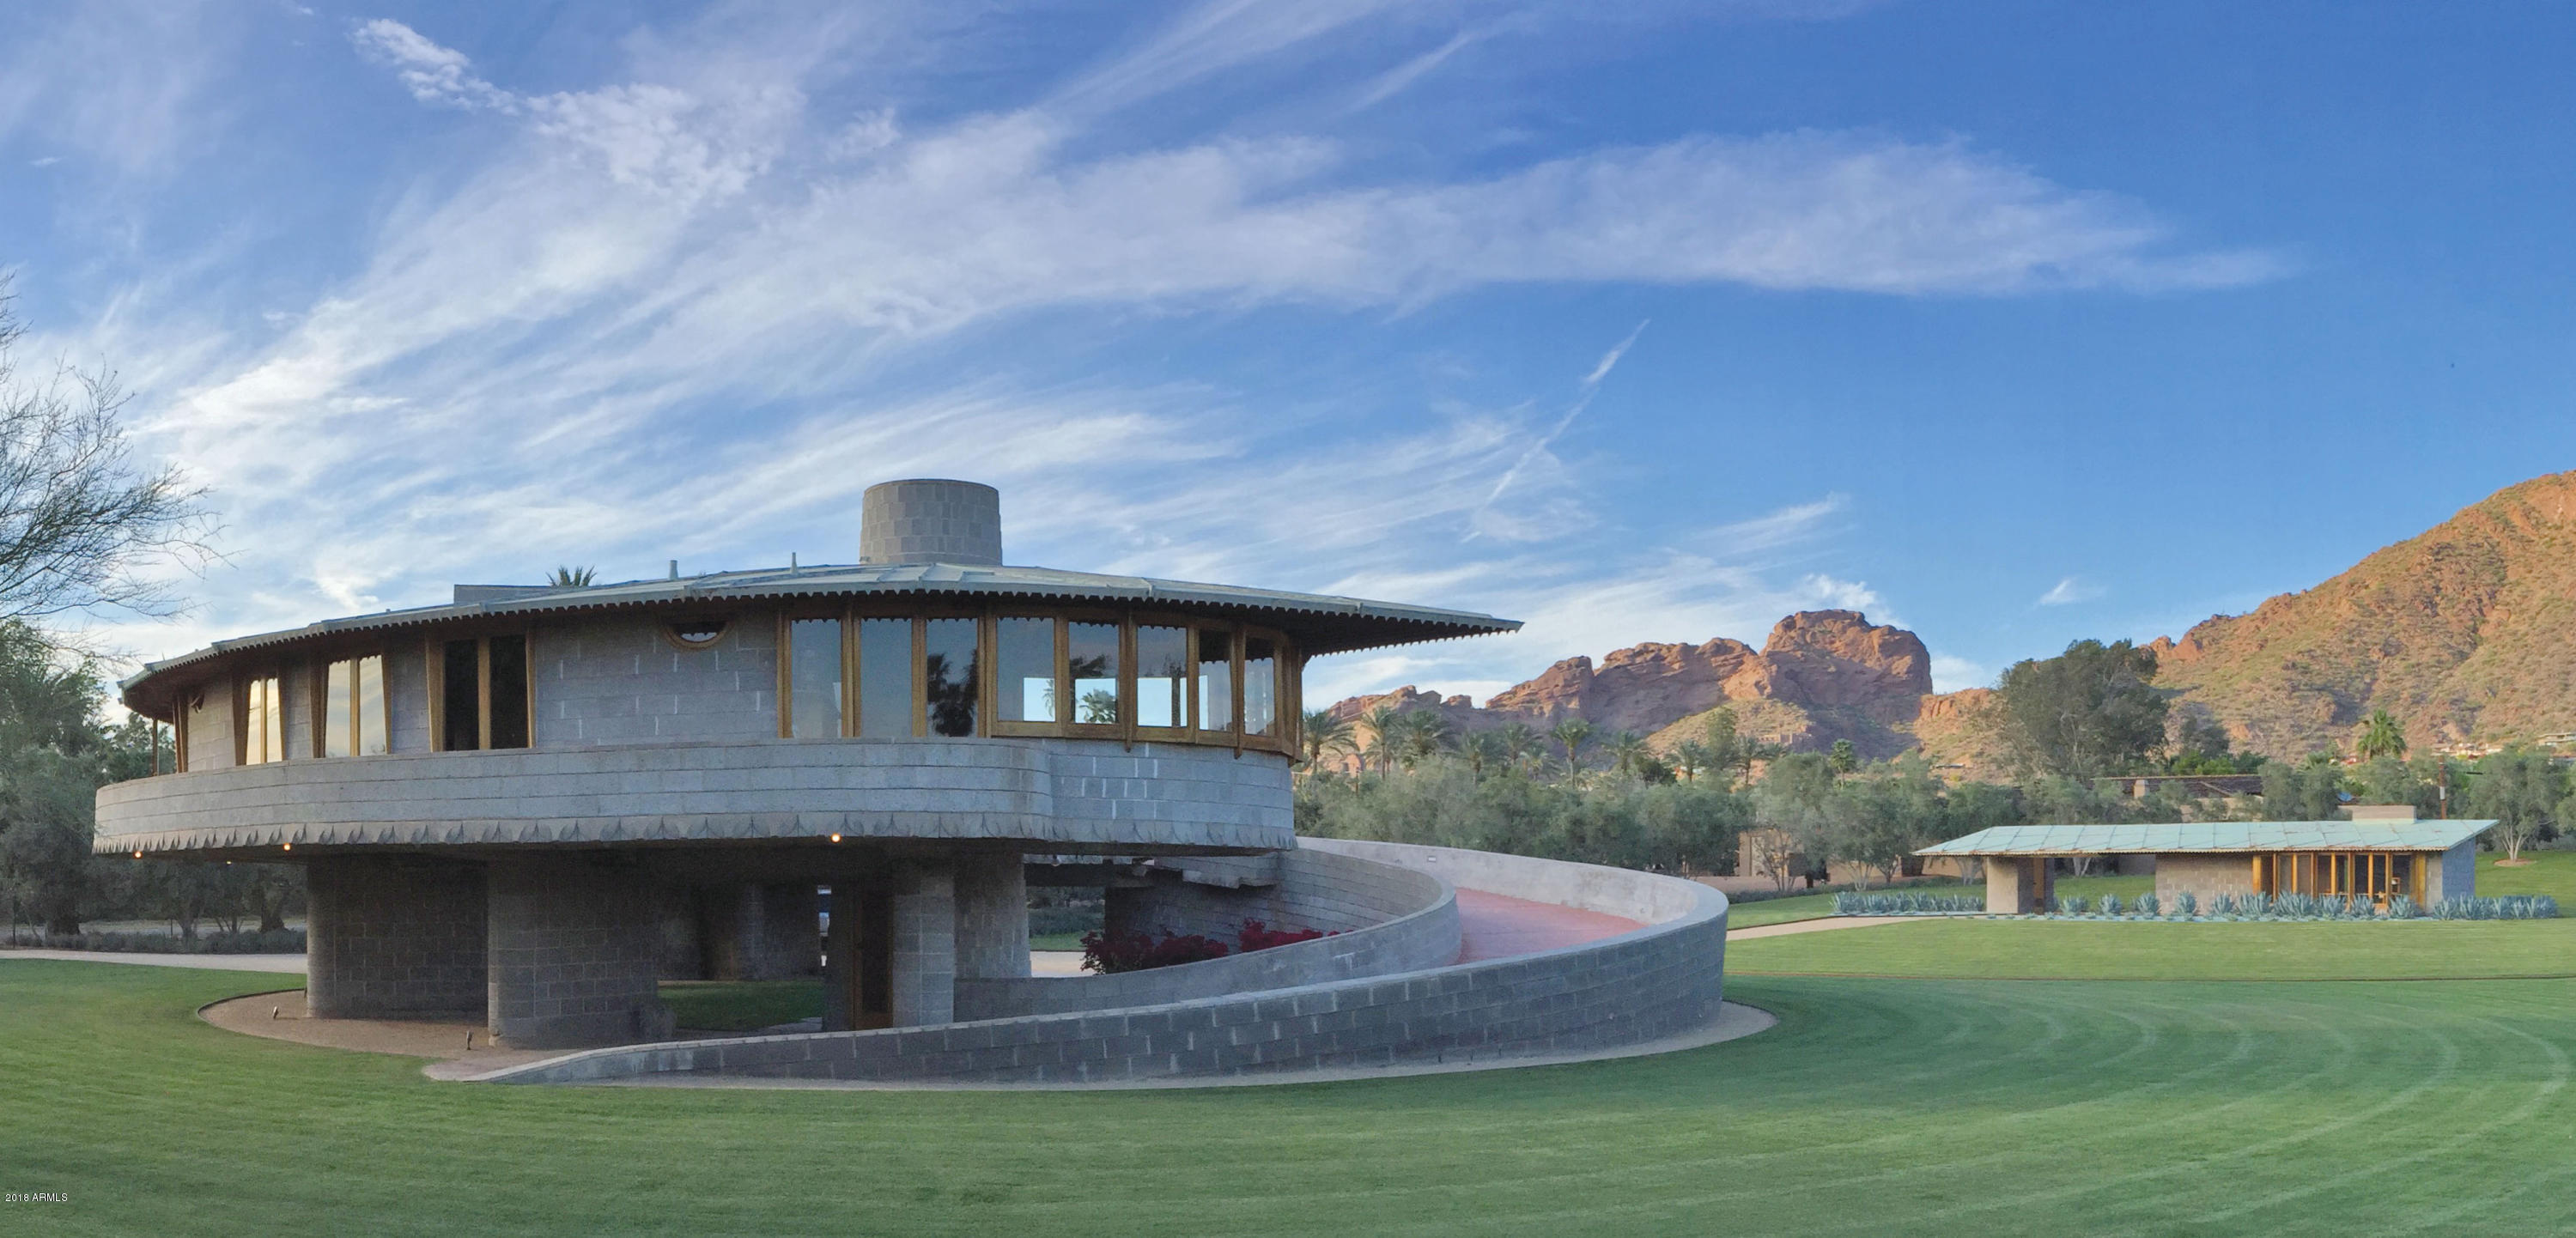 A listing photo of Frank Lloyd Wright's David and Gladys Wright House